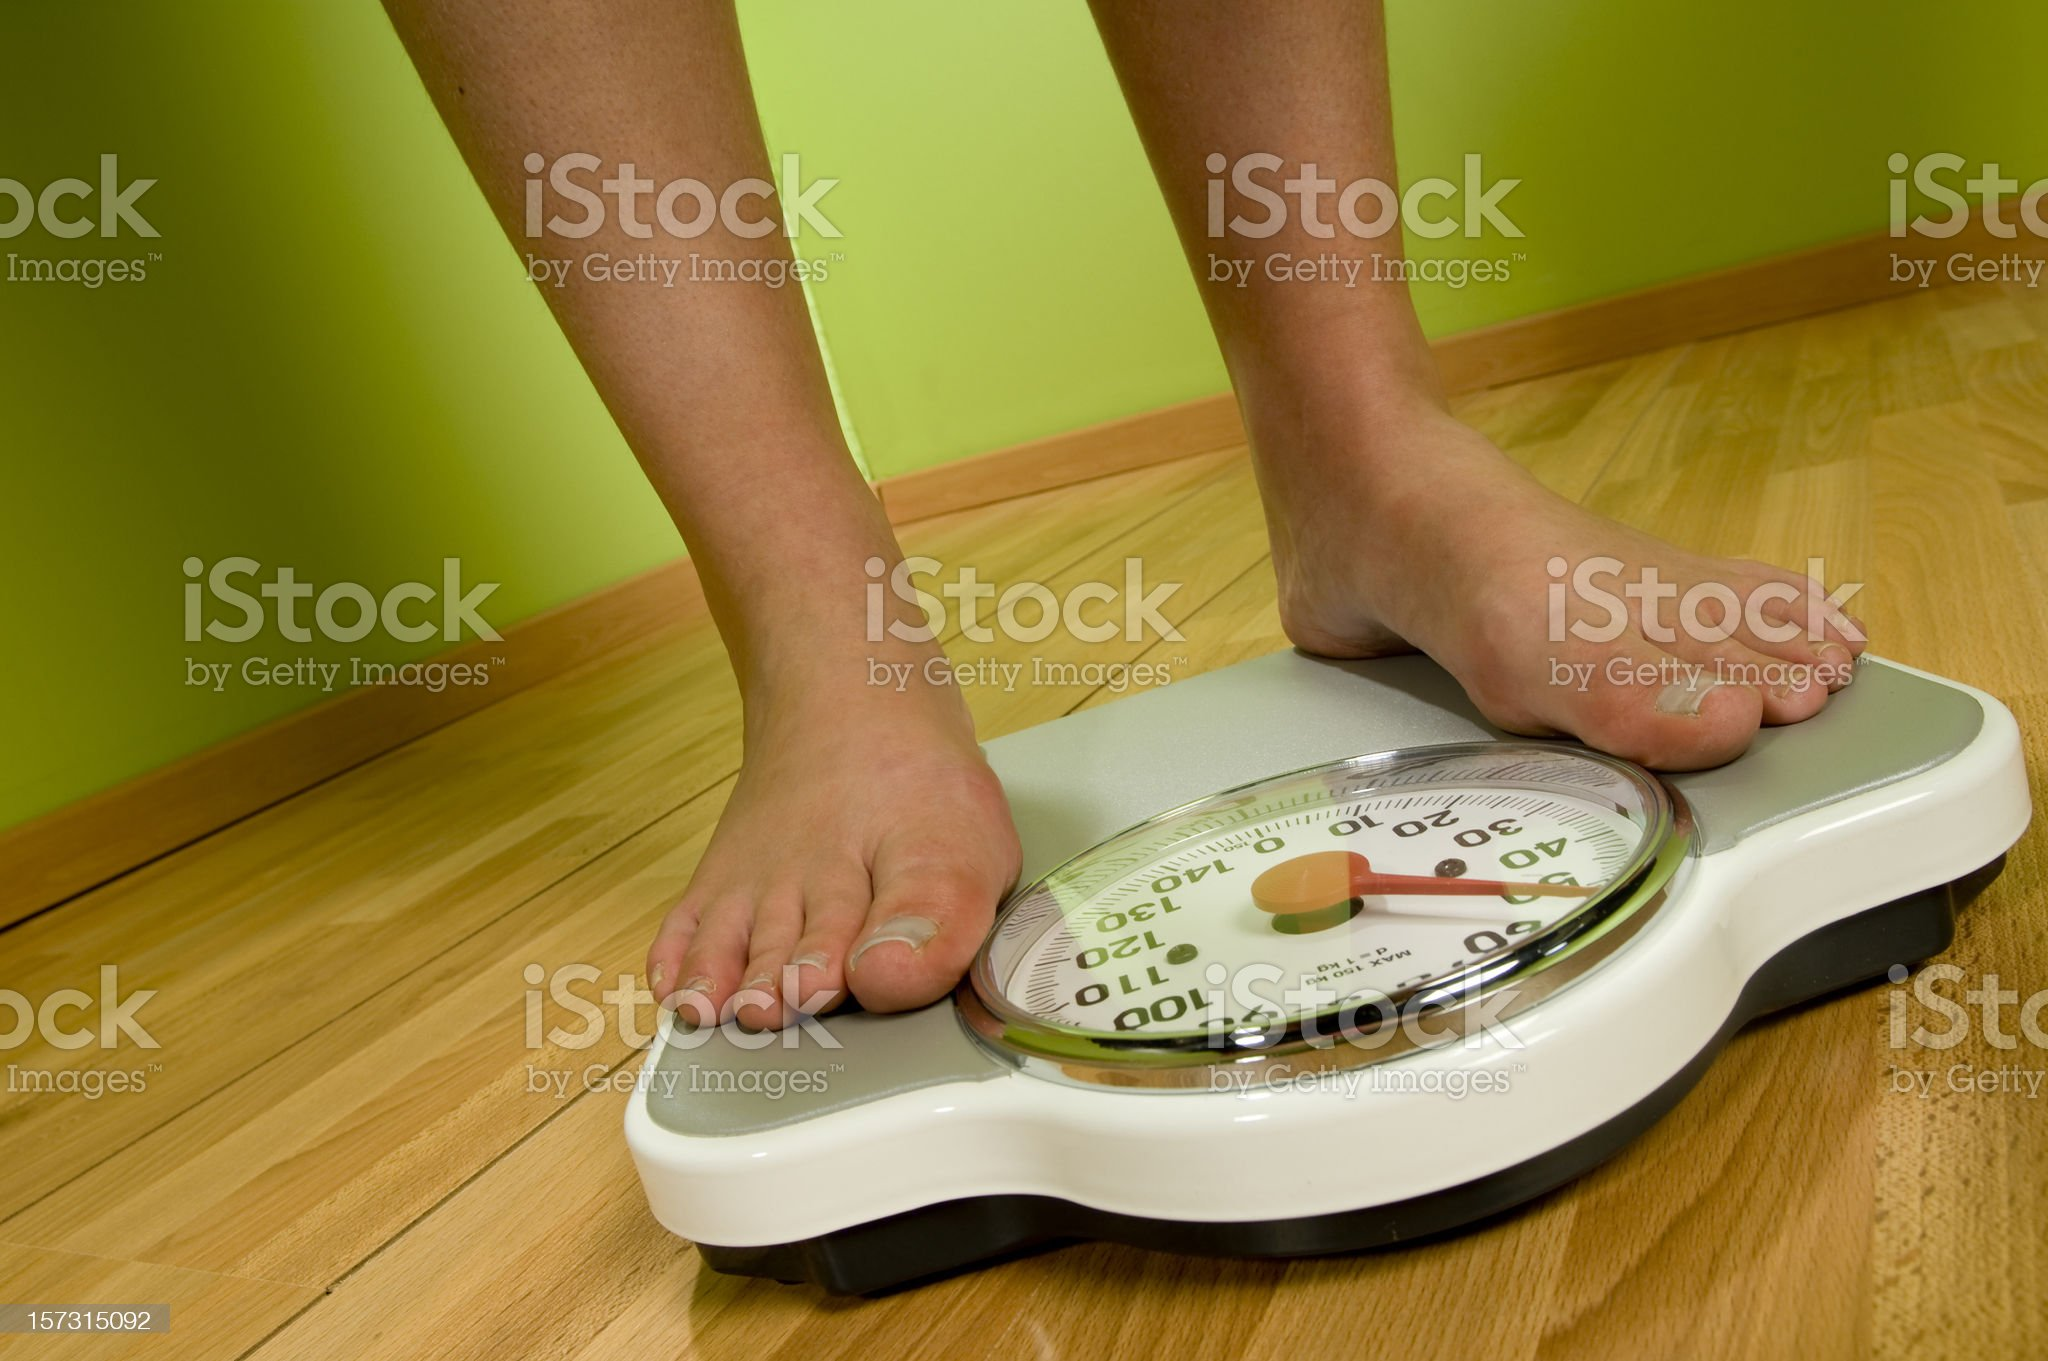 feet on weight scale royalty-free stock photo